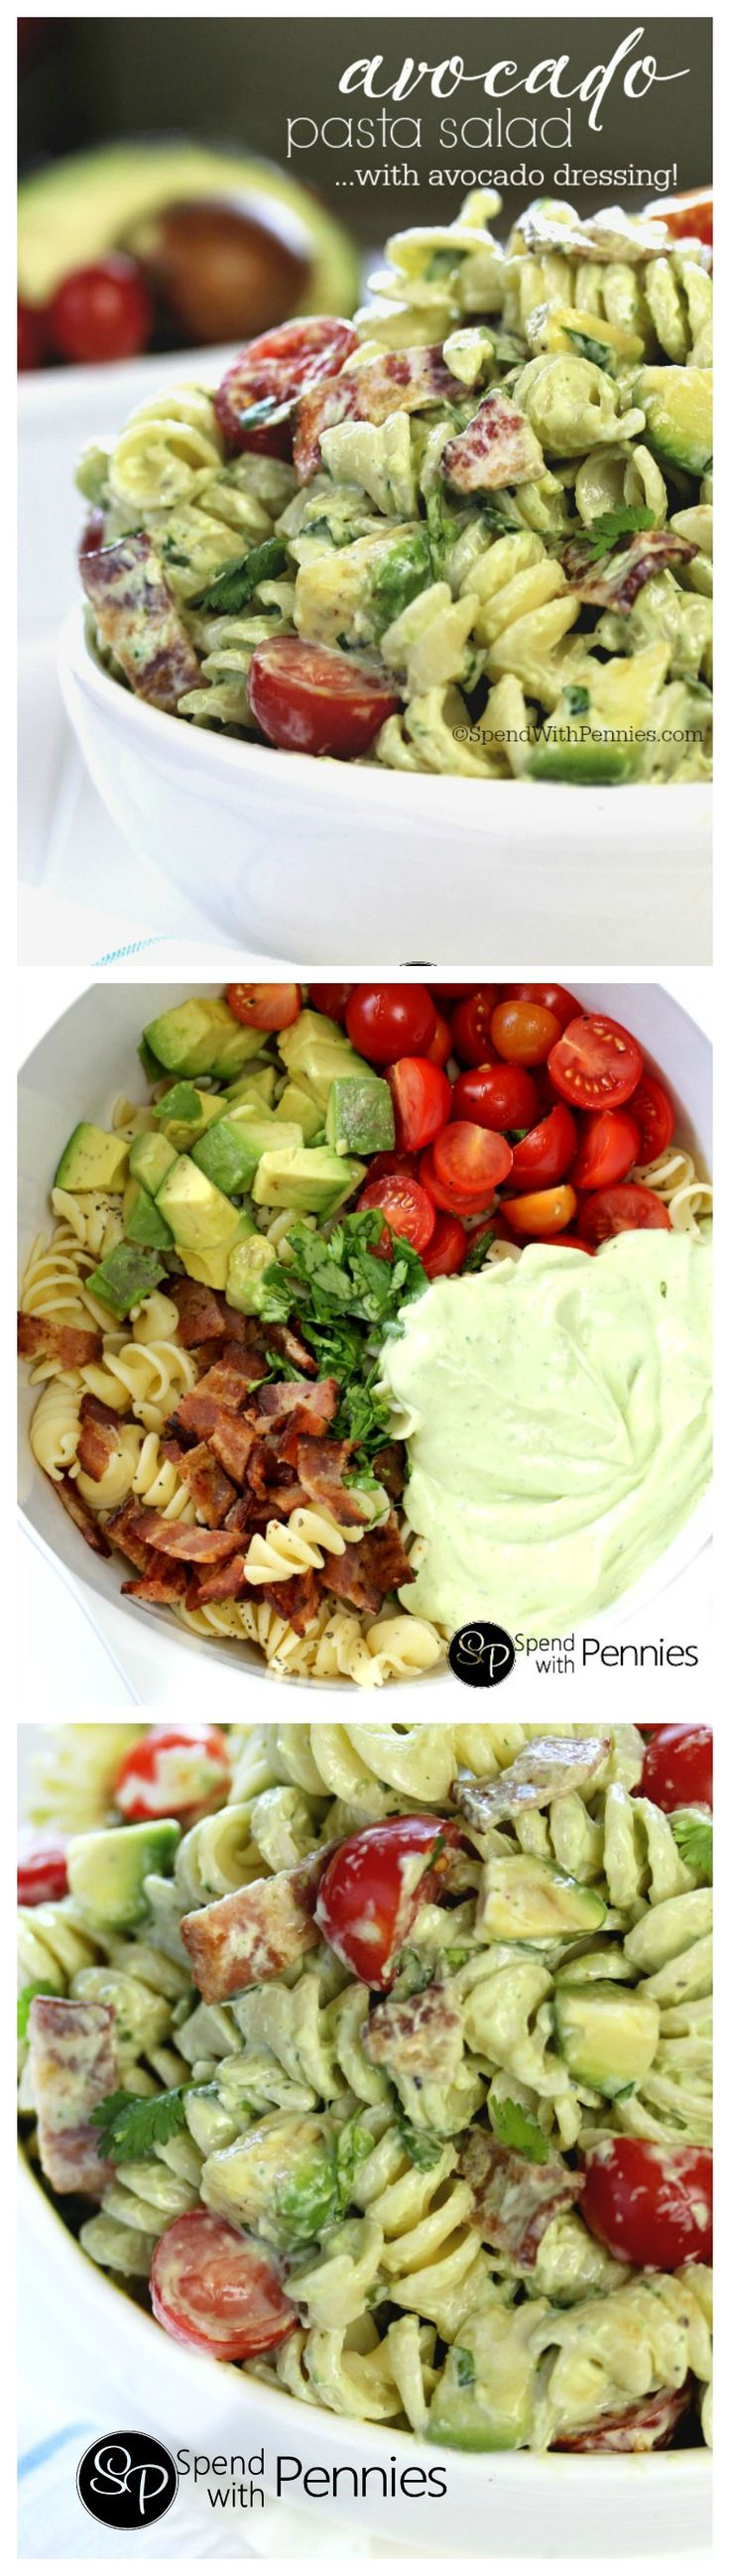 Cold pasta salads are the perfect & satisfying quick dinner or lunch! This delicious pasta salad recipe is loaded with avocados,